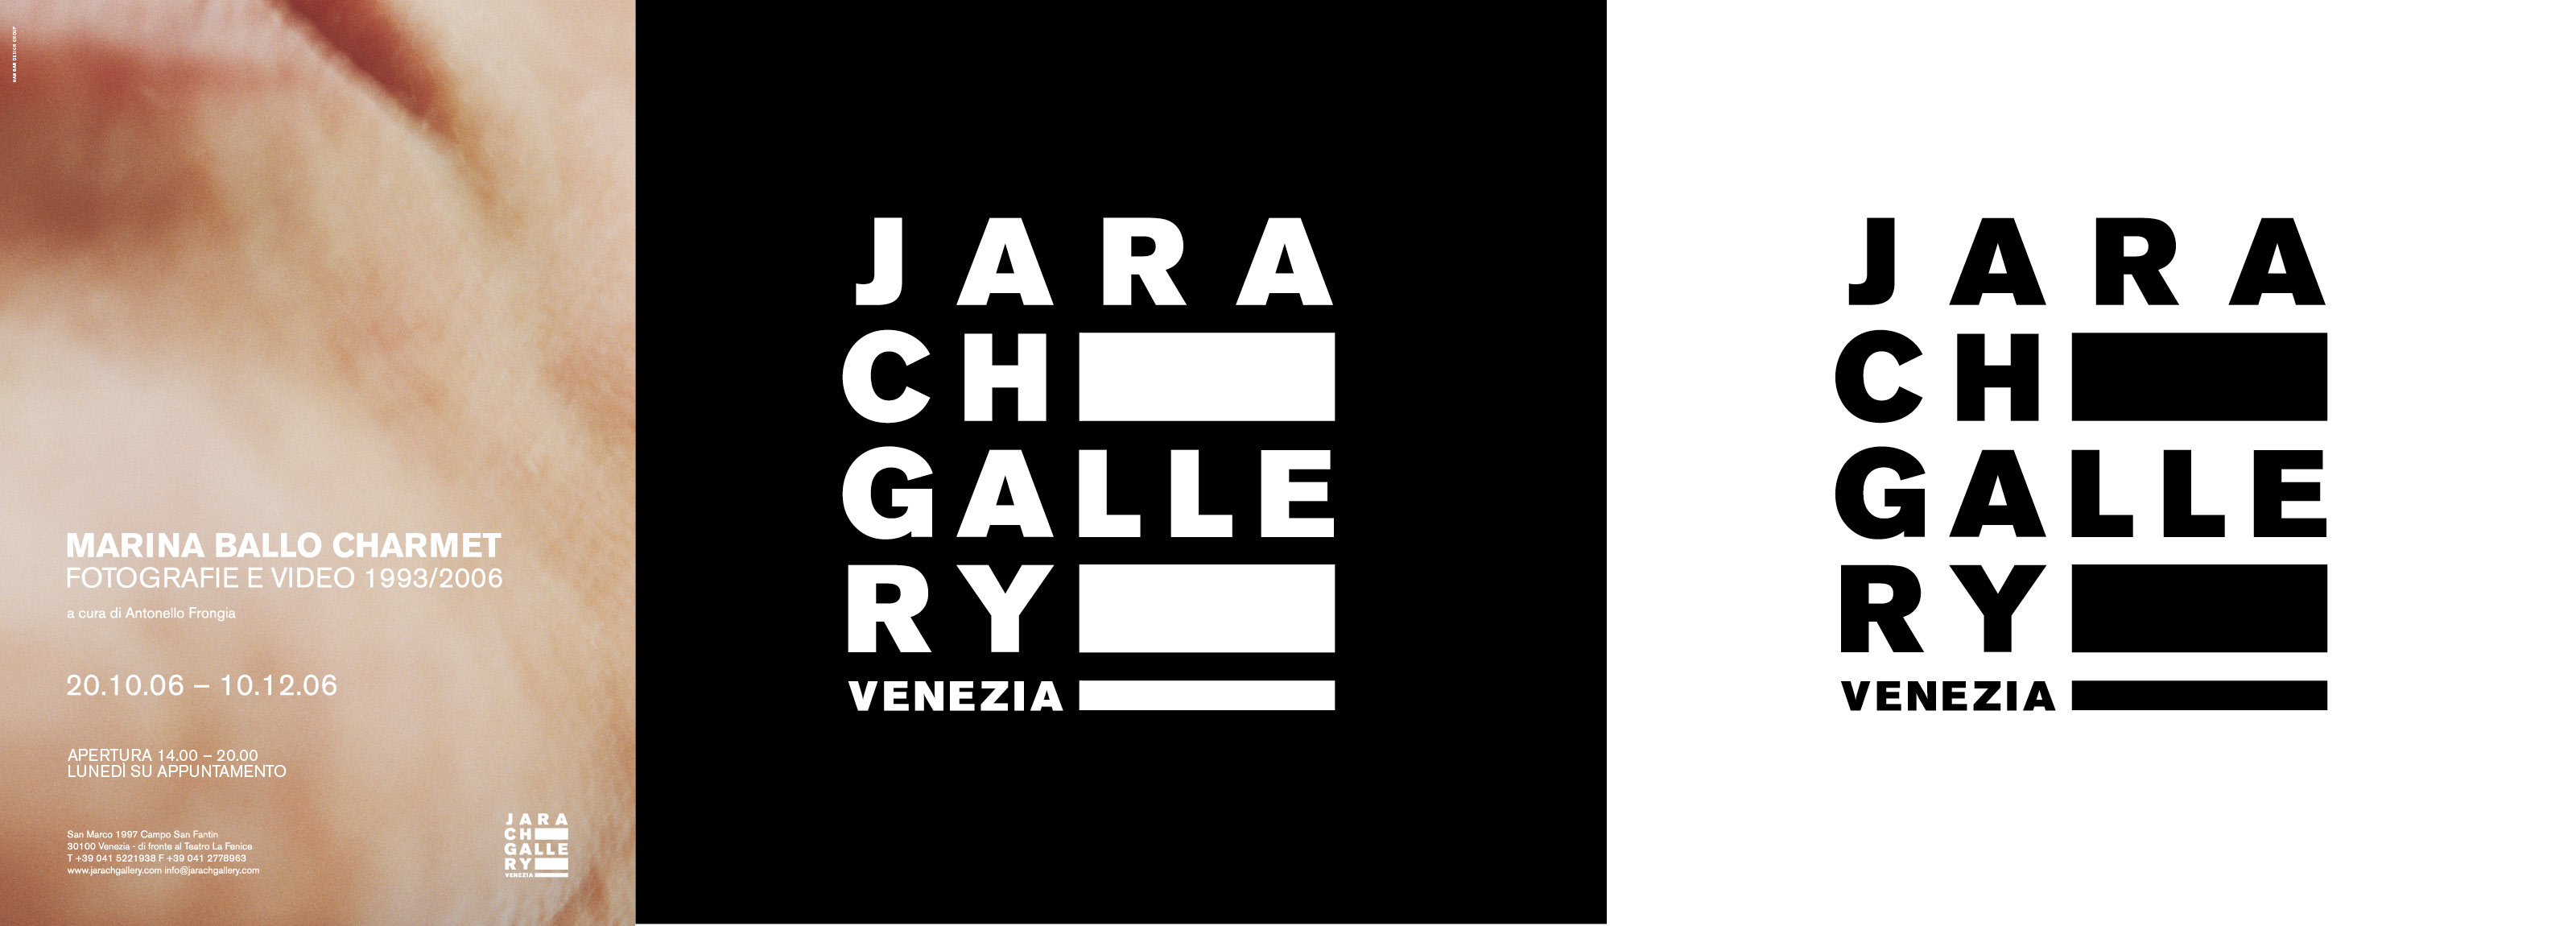 Hangar Design Group creation of a new logo for the venetian gallery.